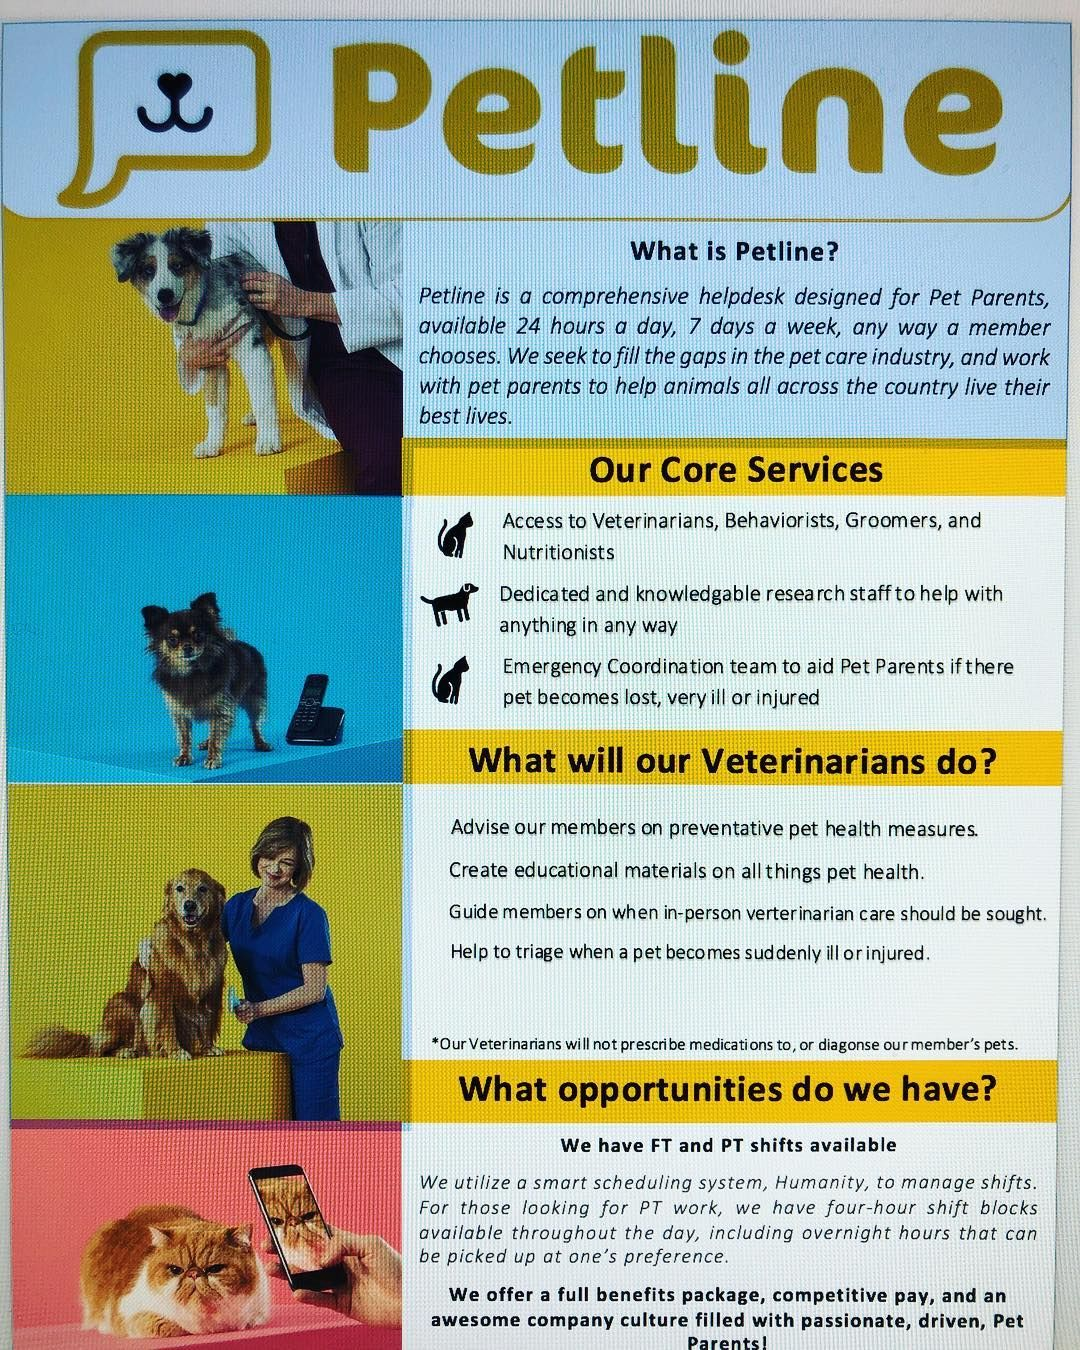 Please Share With All Your Pet Networks And Veterinarian Friends Email Dani Marrero Petline Com For More Info Petcare Petpros V Pet Care Pet Parent Pets